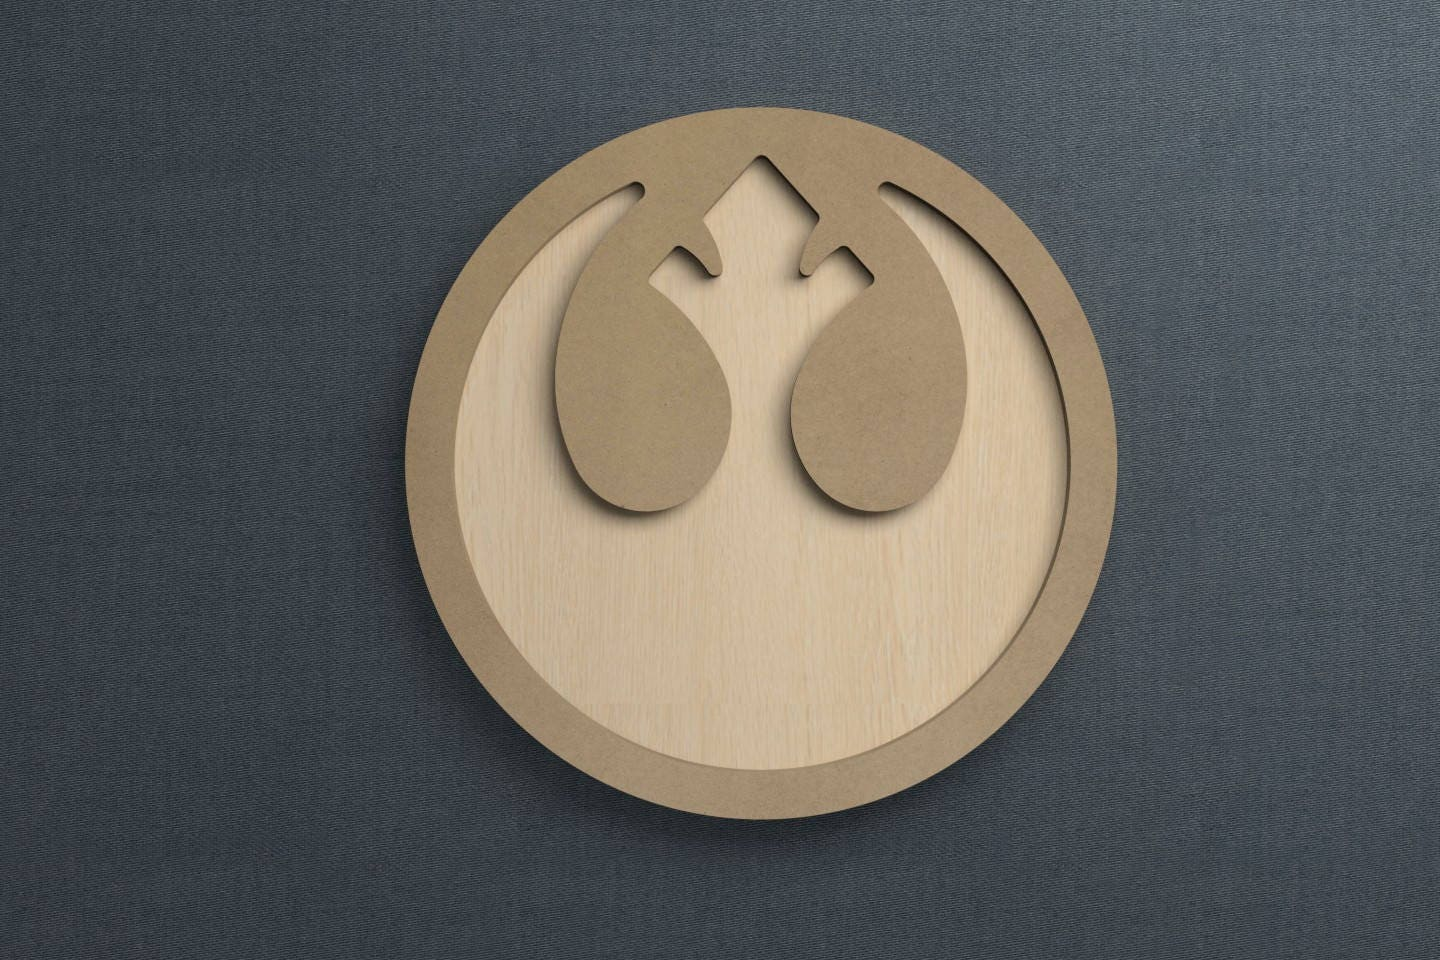 Frame Kit Rebel Alliance Wood Frame Picture Frame DIY